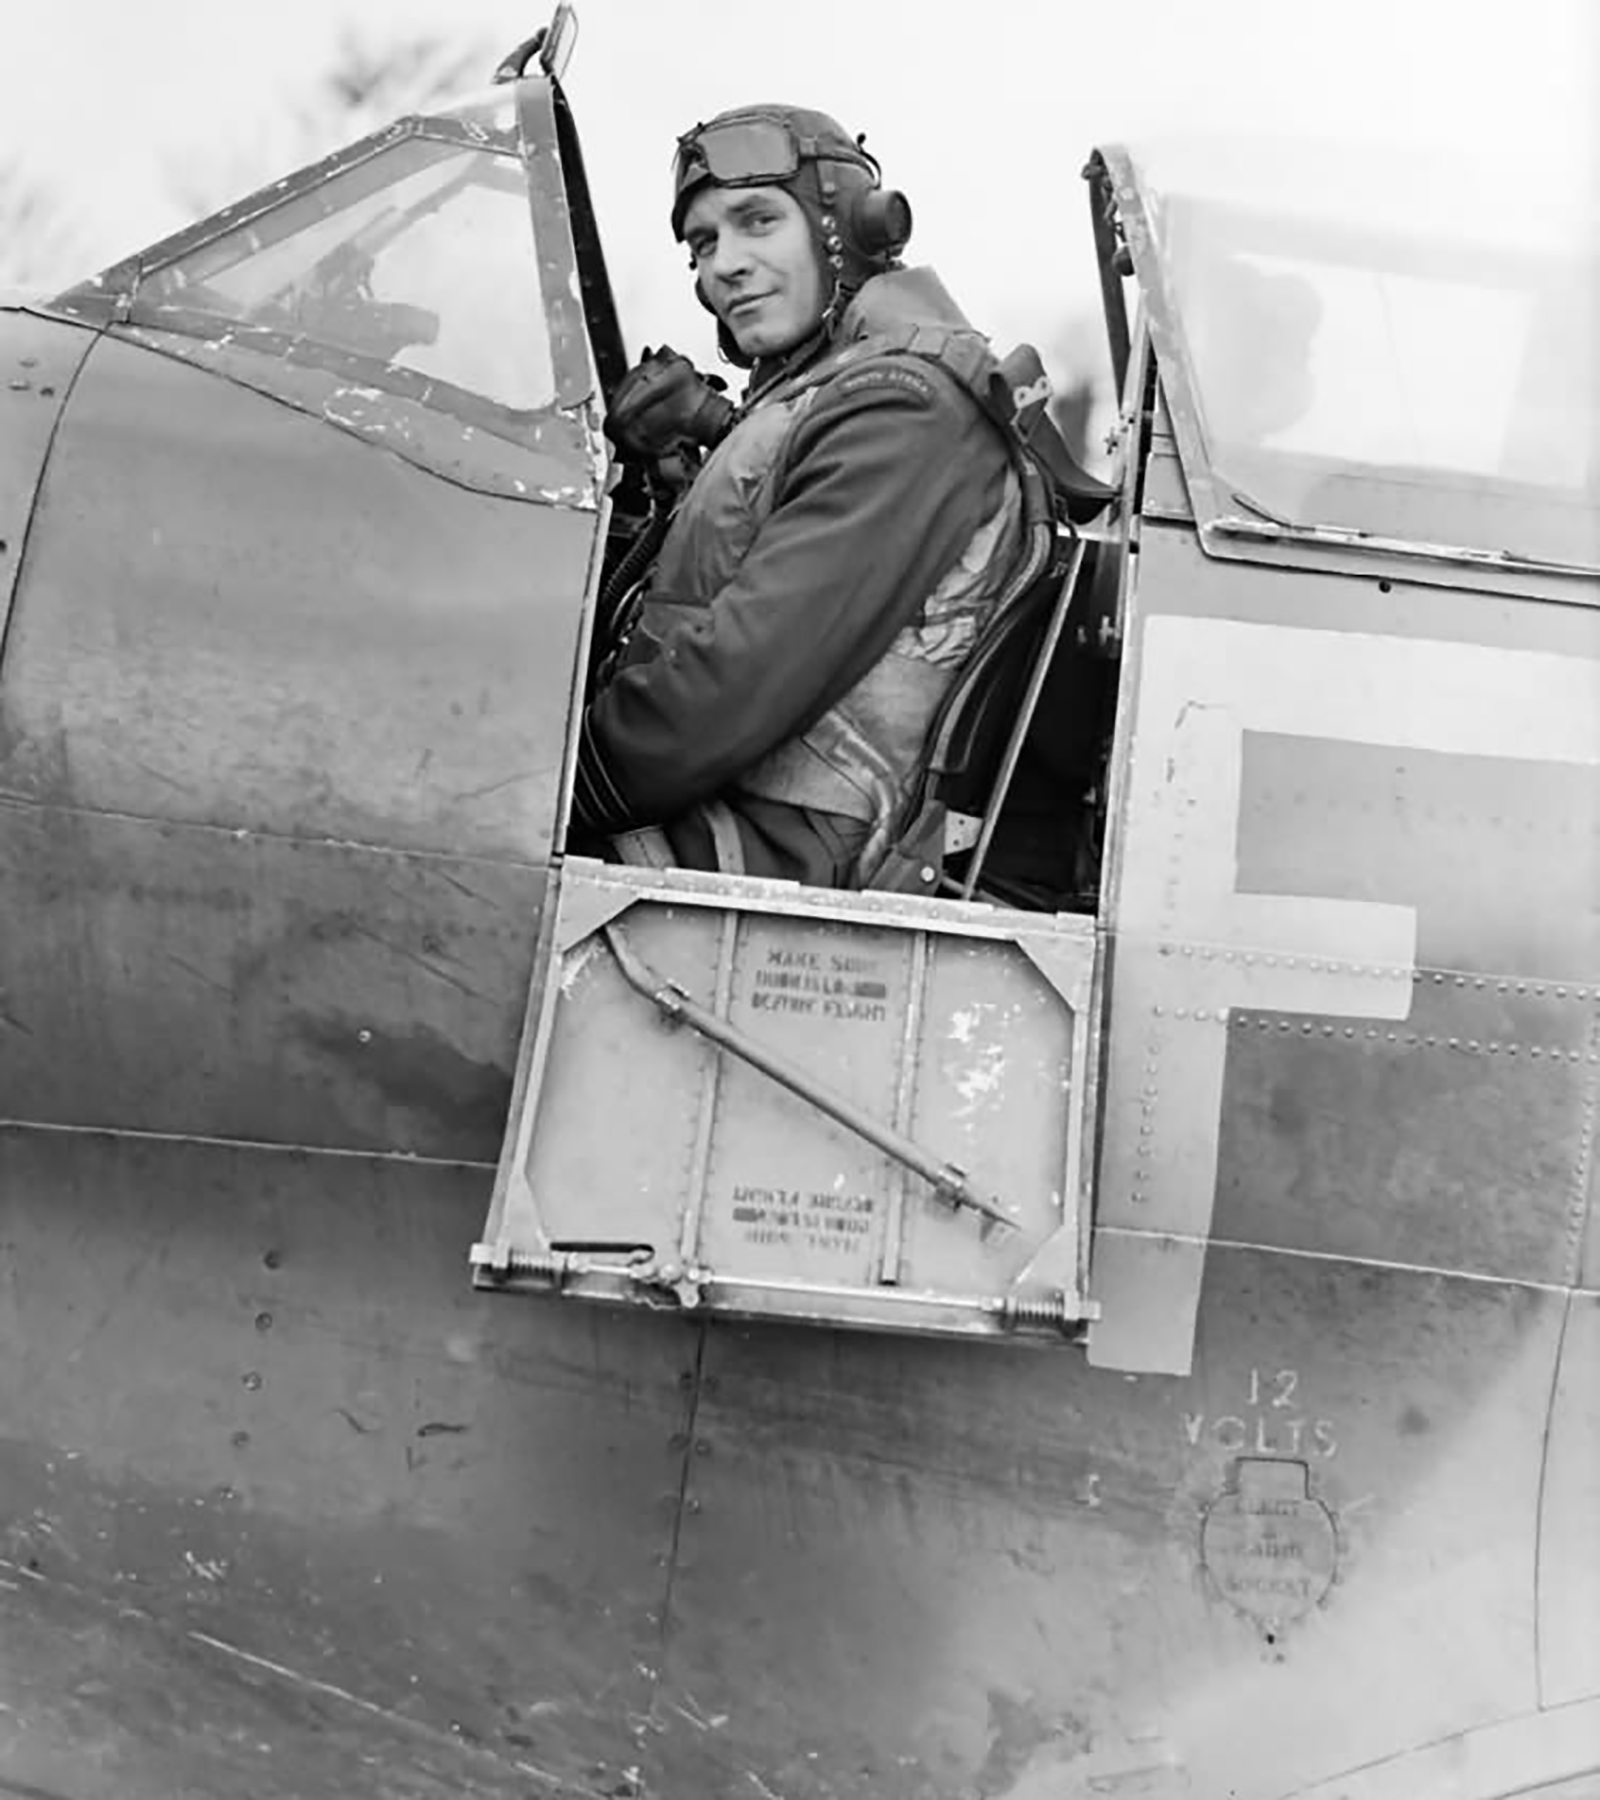 Aircrew RAF Biggin Hill Wing Commander AG Malan DSO DFC in Spitfire 2nd Jan 1943 01